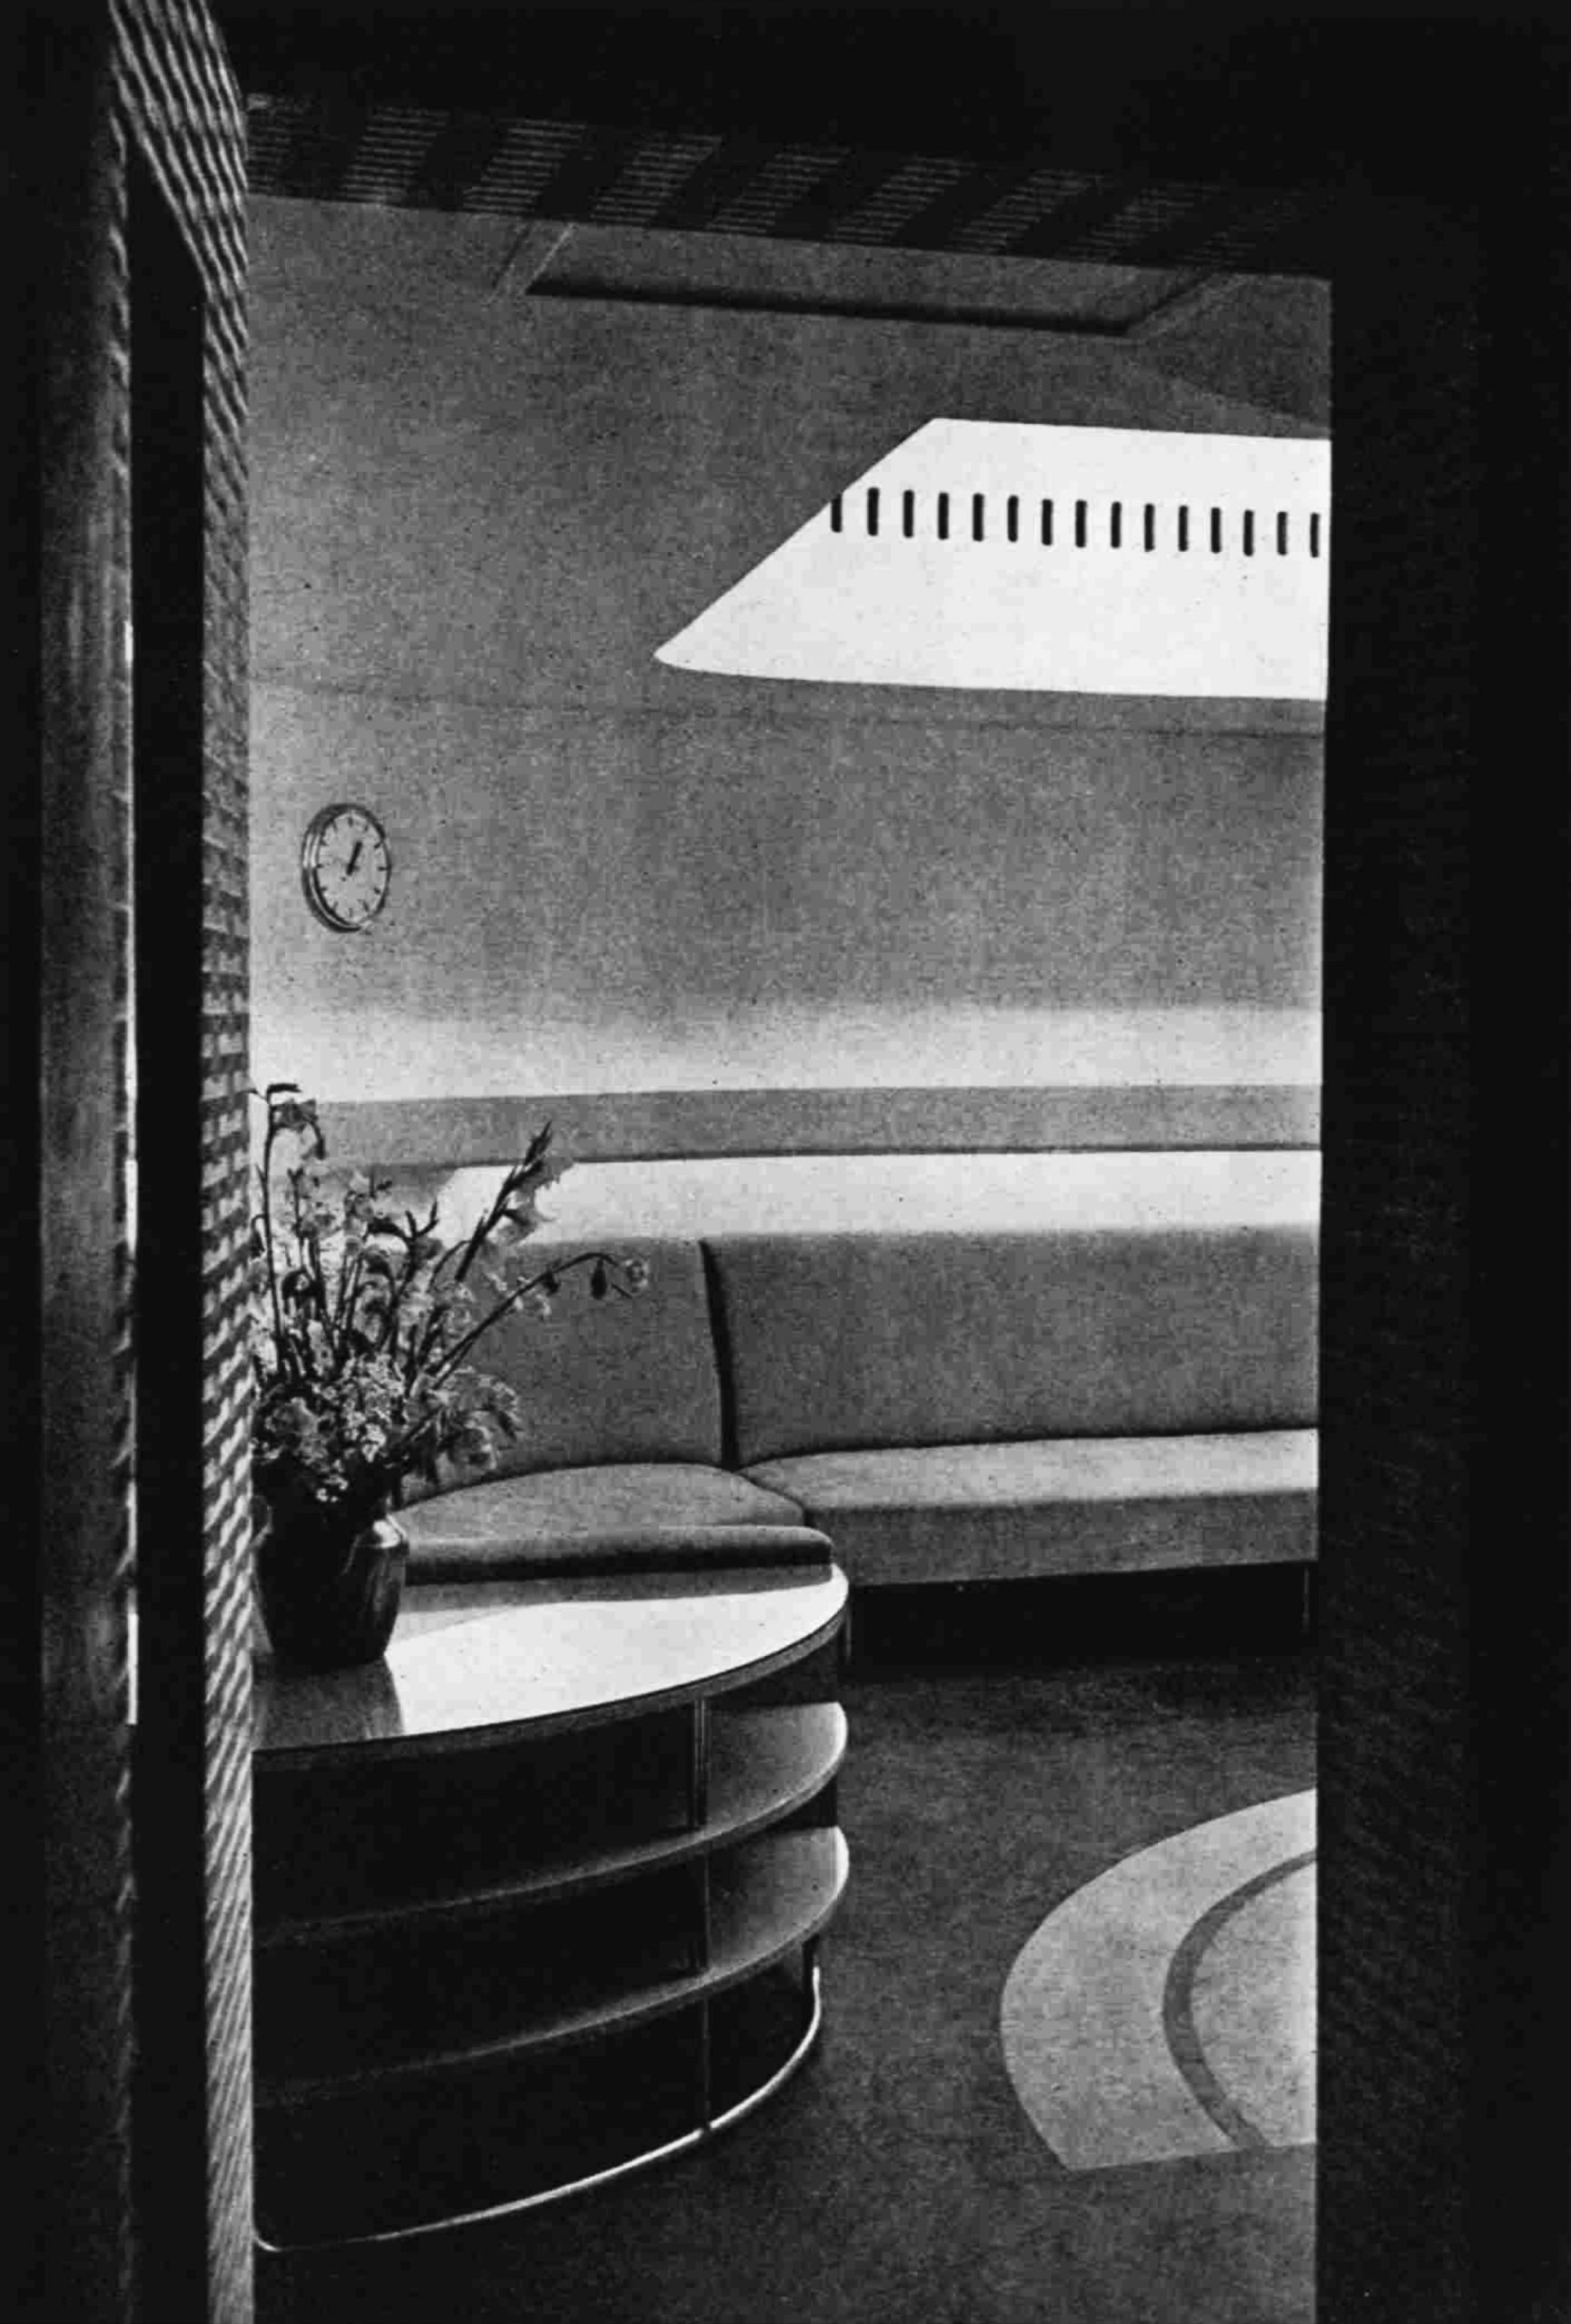 Looking in through a door at a curved shelving unit and a fitted sofa along the back wall